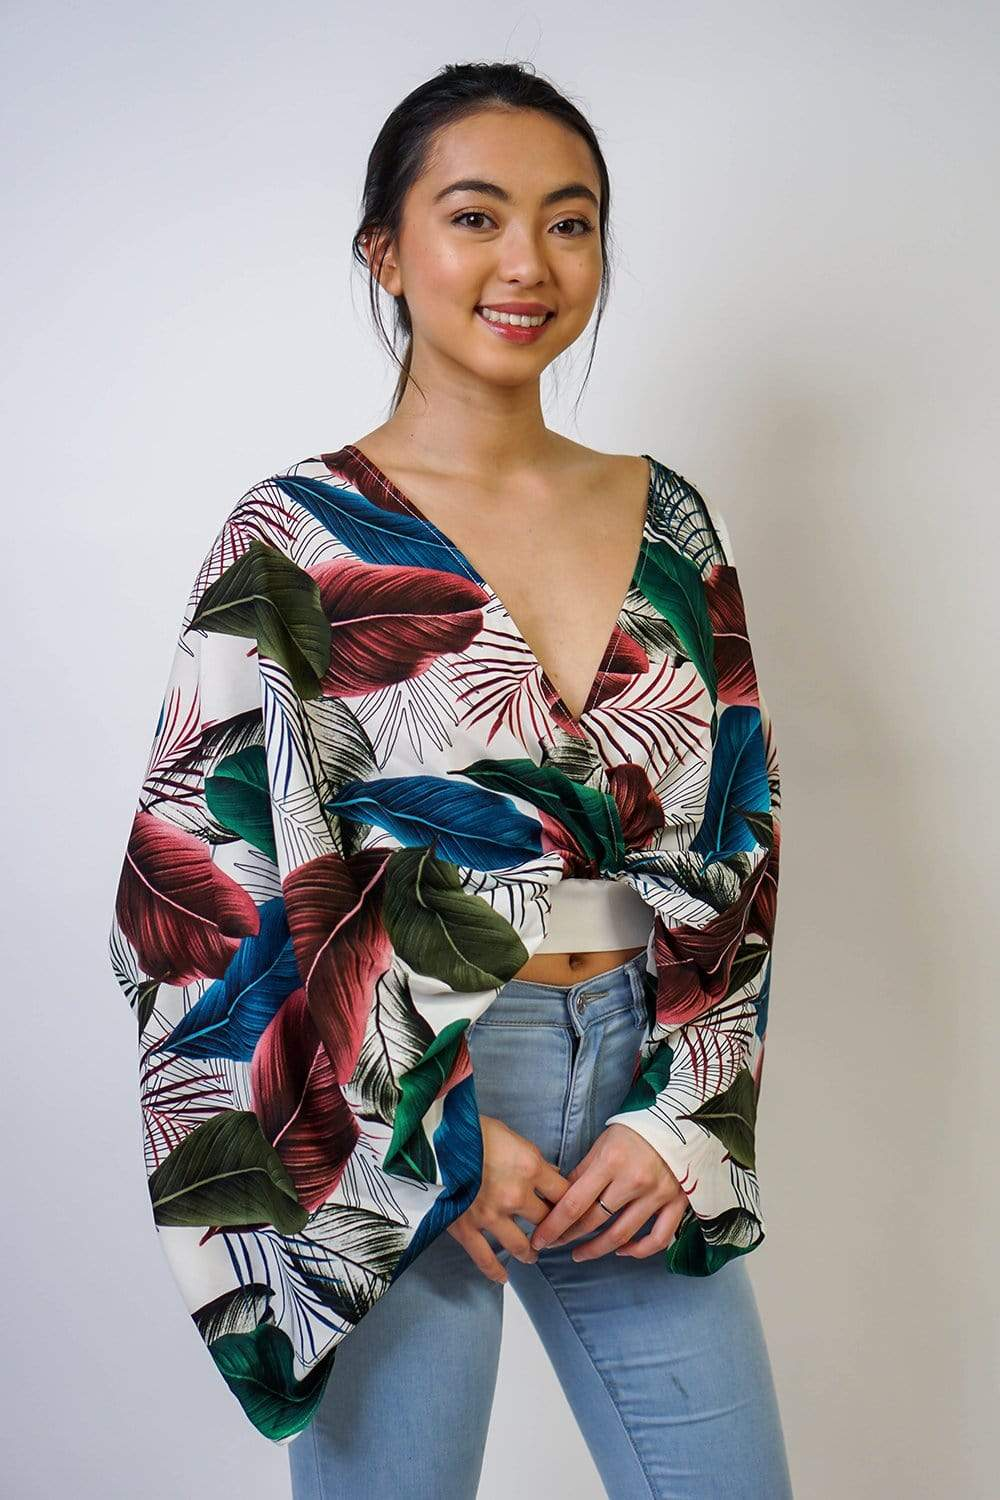 TOP Empire Tropical Feathers Printed Batwing Top - Chloe Dao